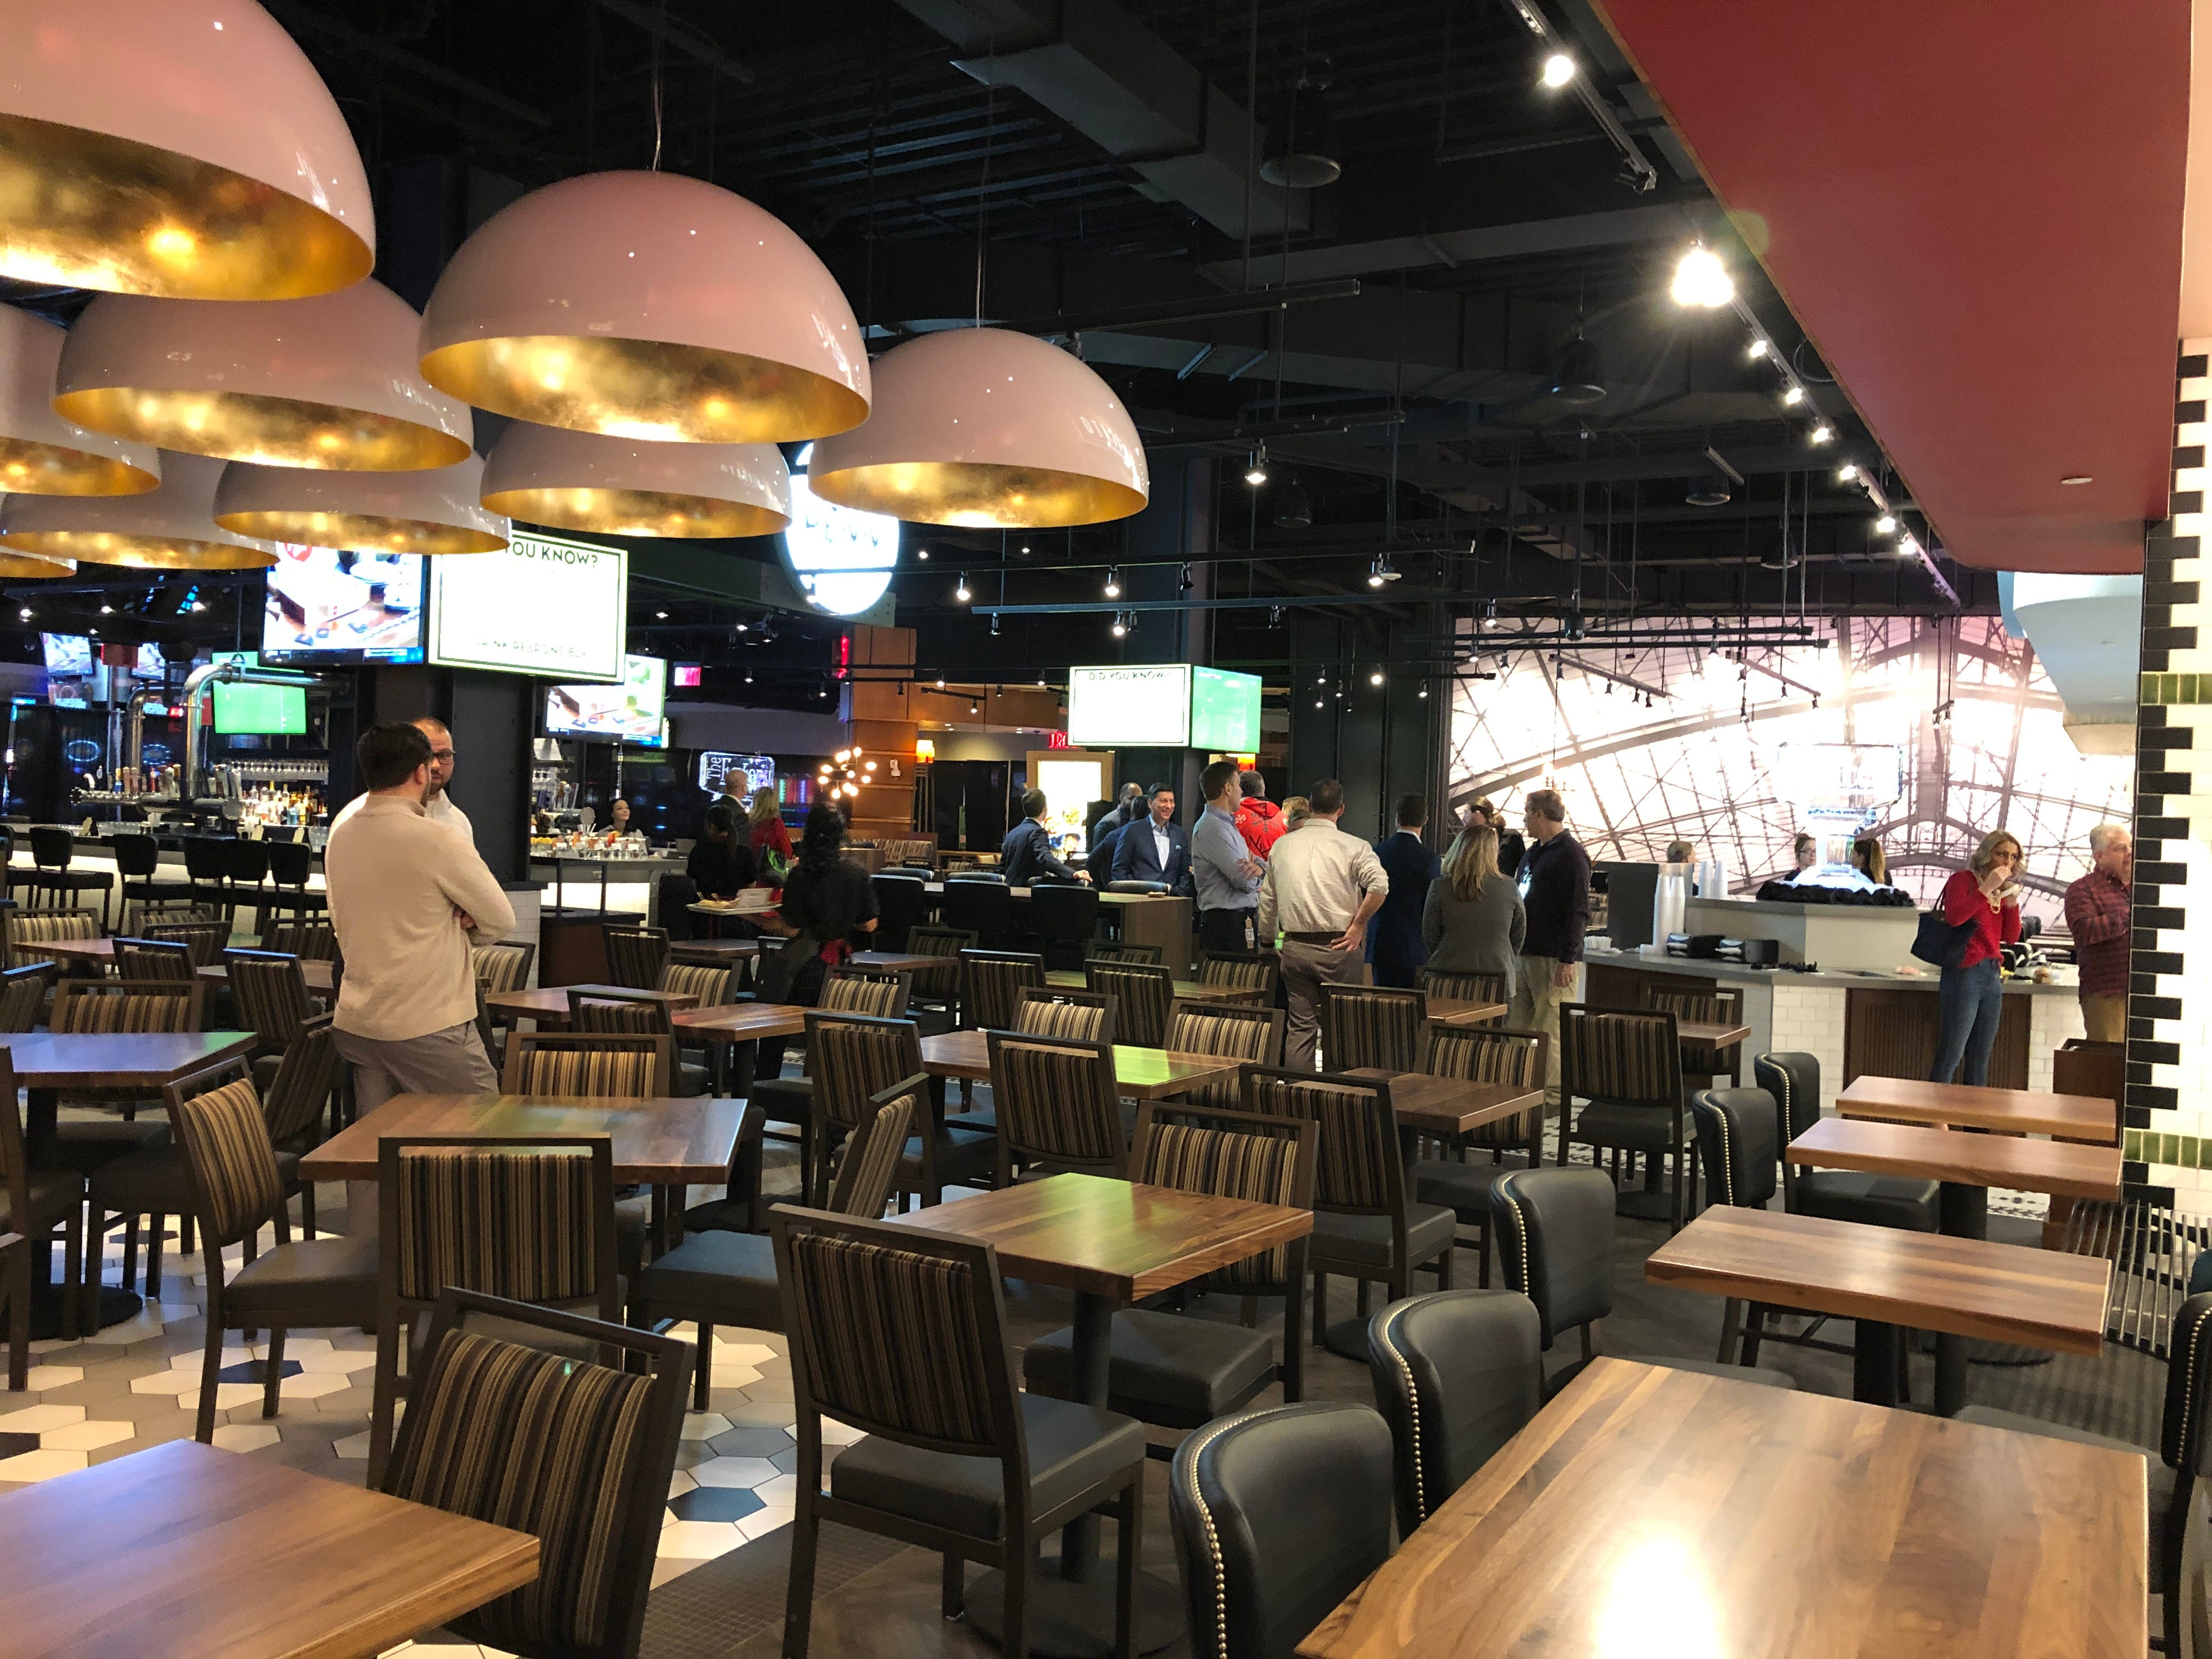 The Eatery is cafeteria style, with a large dining hall for customers to sit and have a bite to eat.